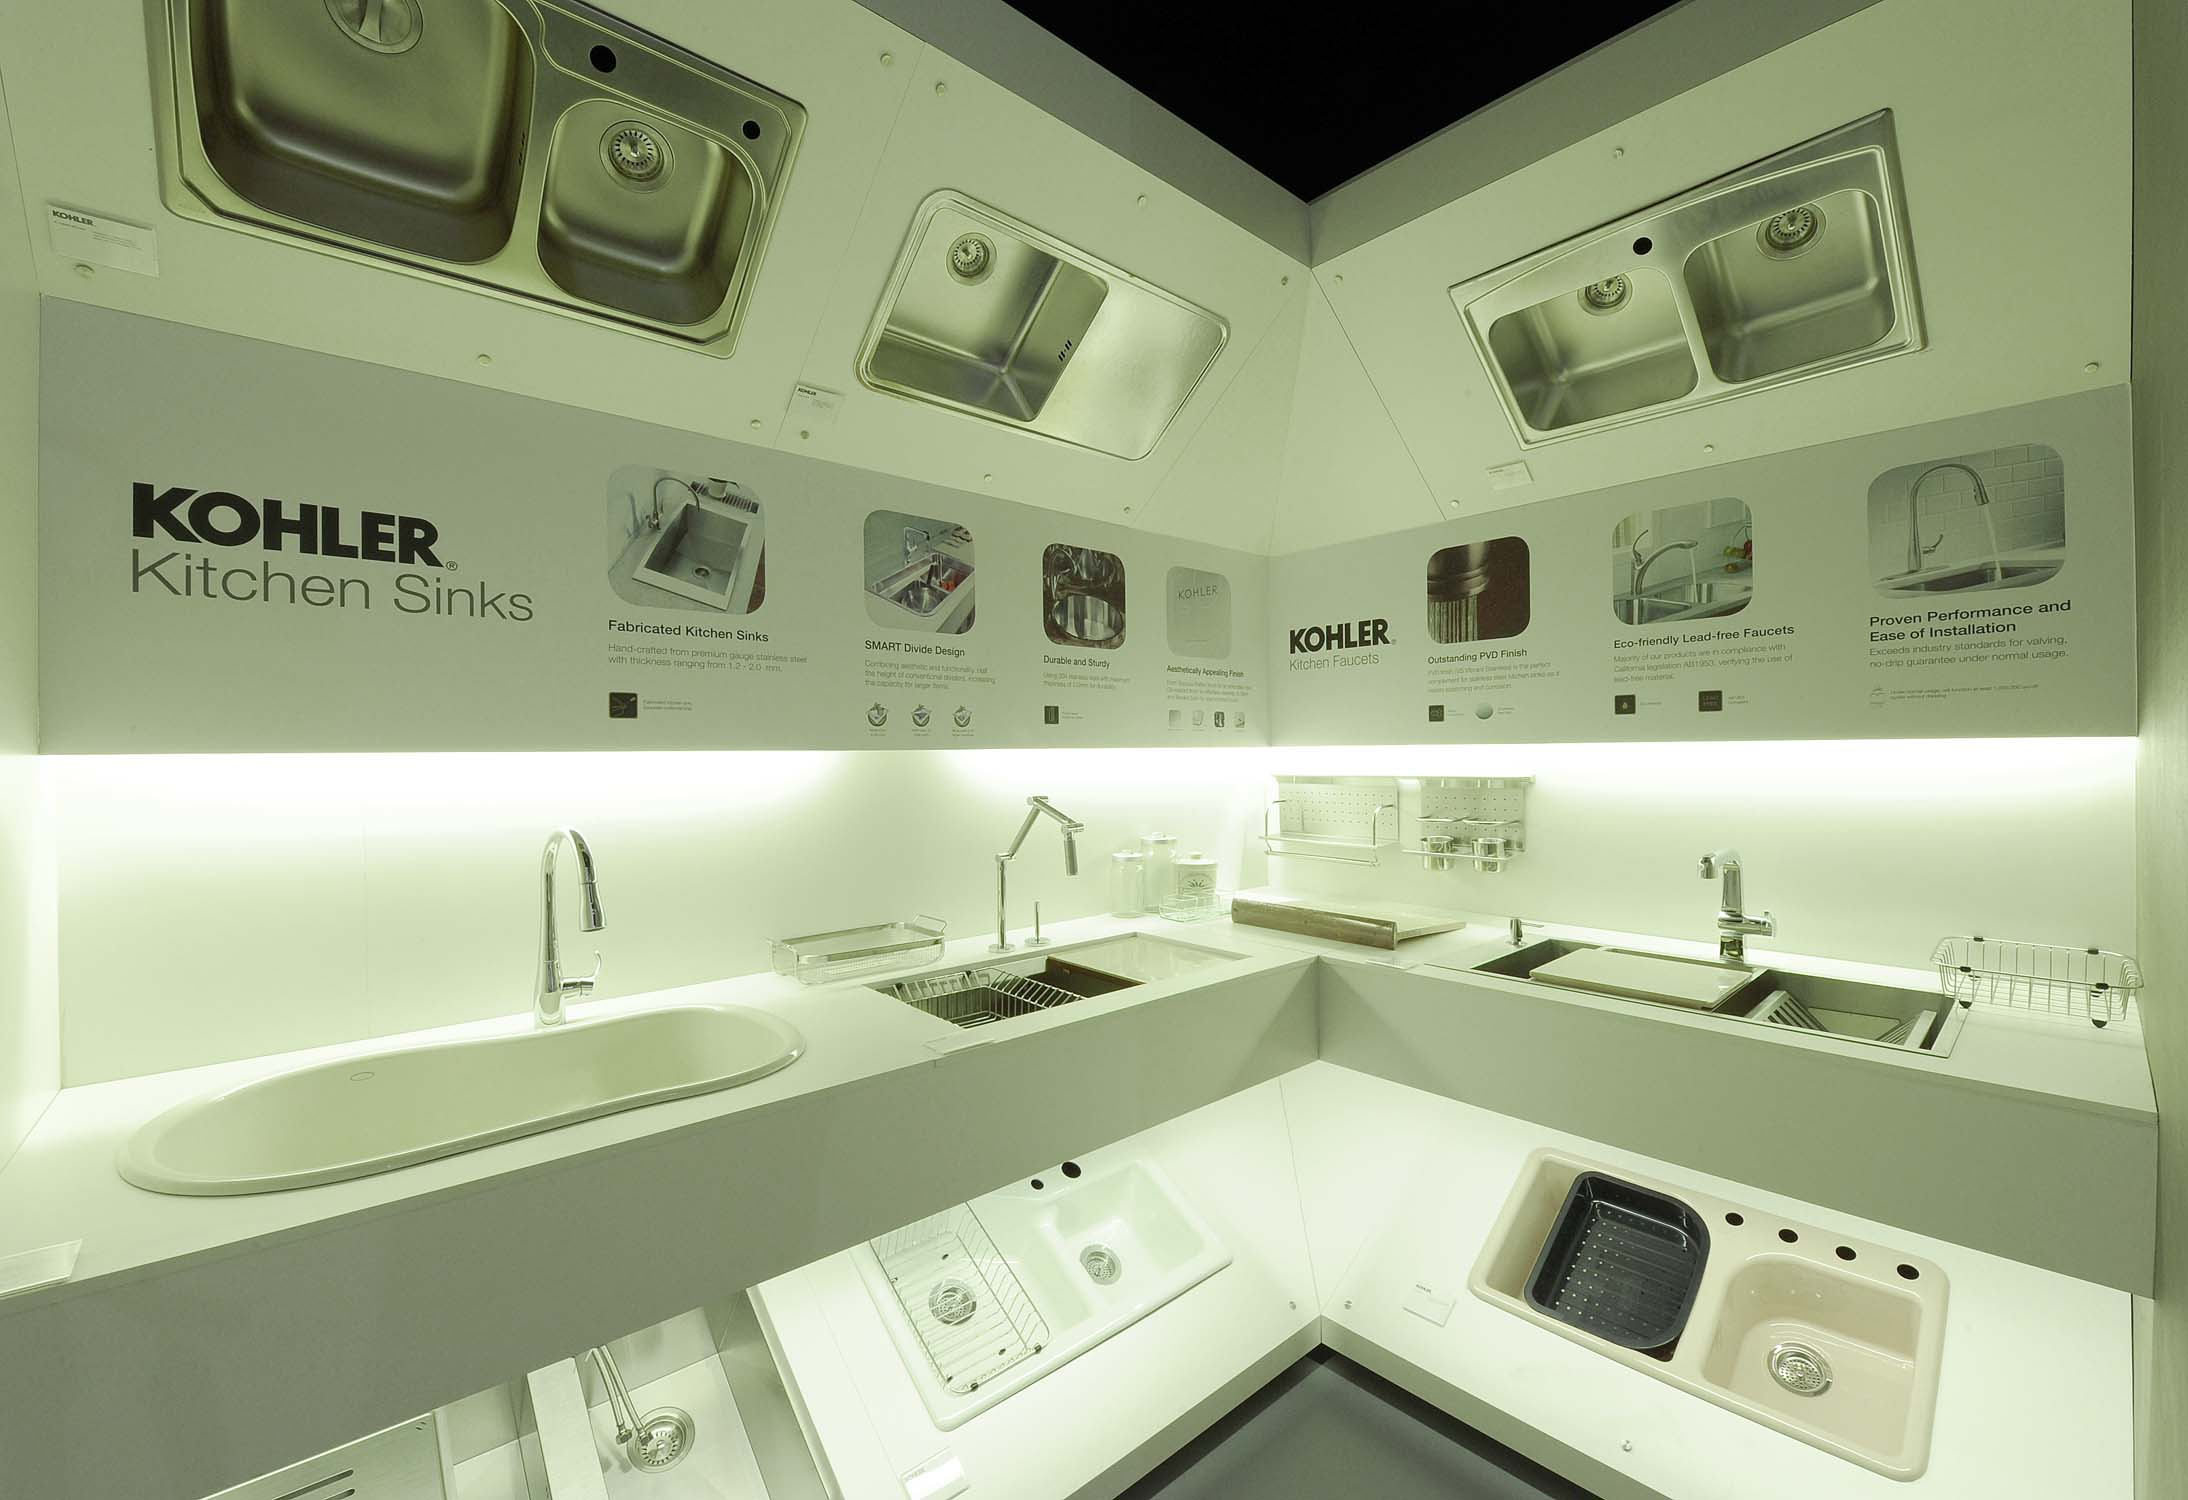 Amazing Kohler Showroom Nyc Image - Bathtub Design Ideas - valtak.com